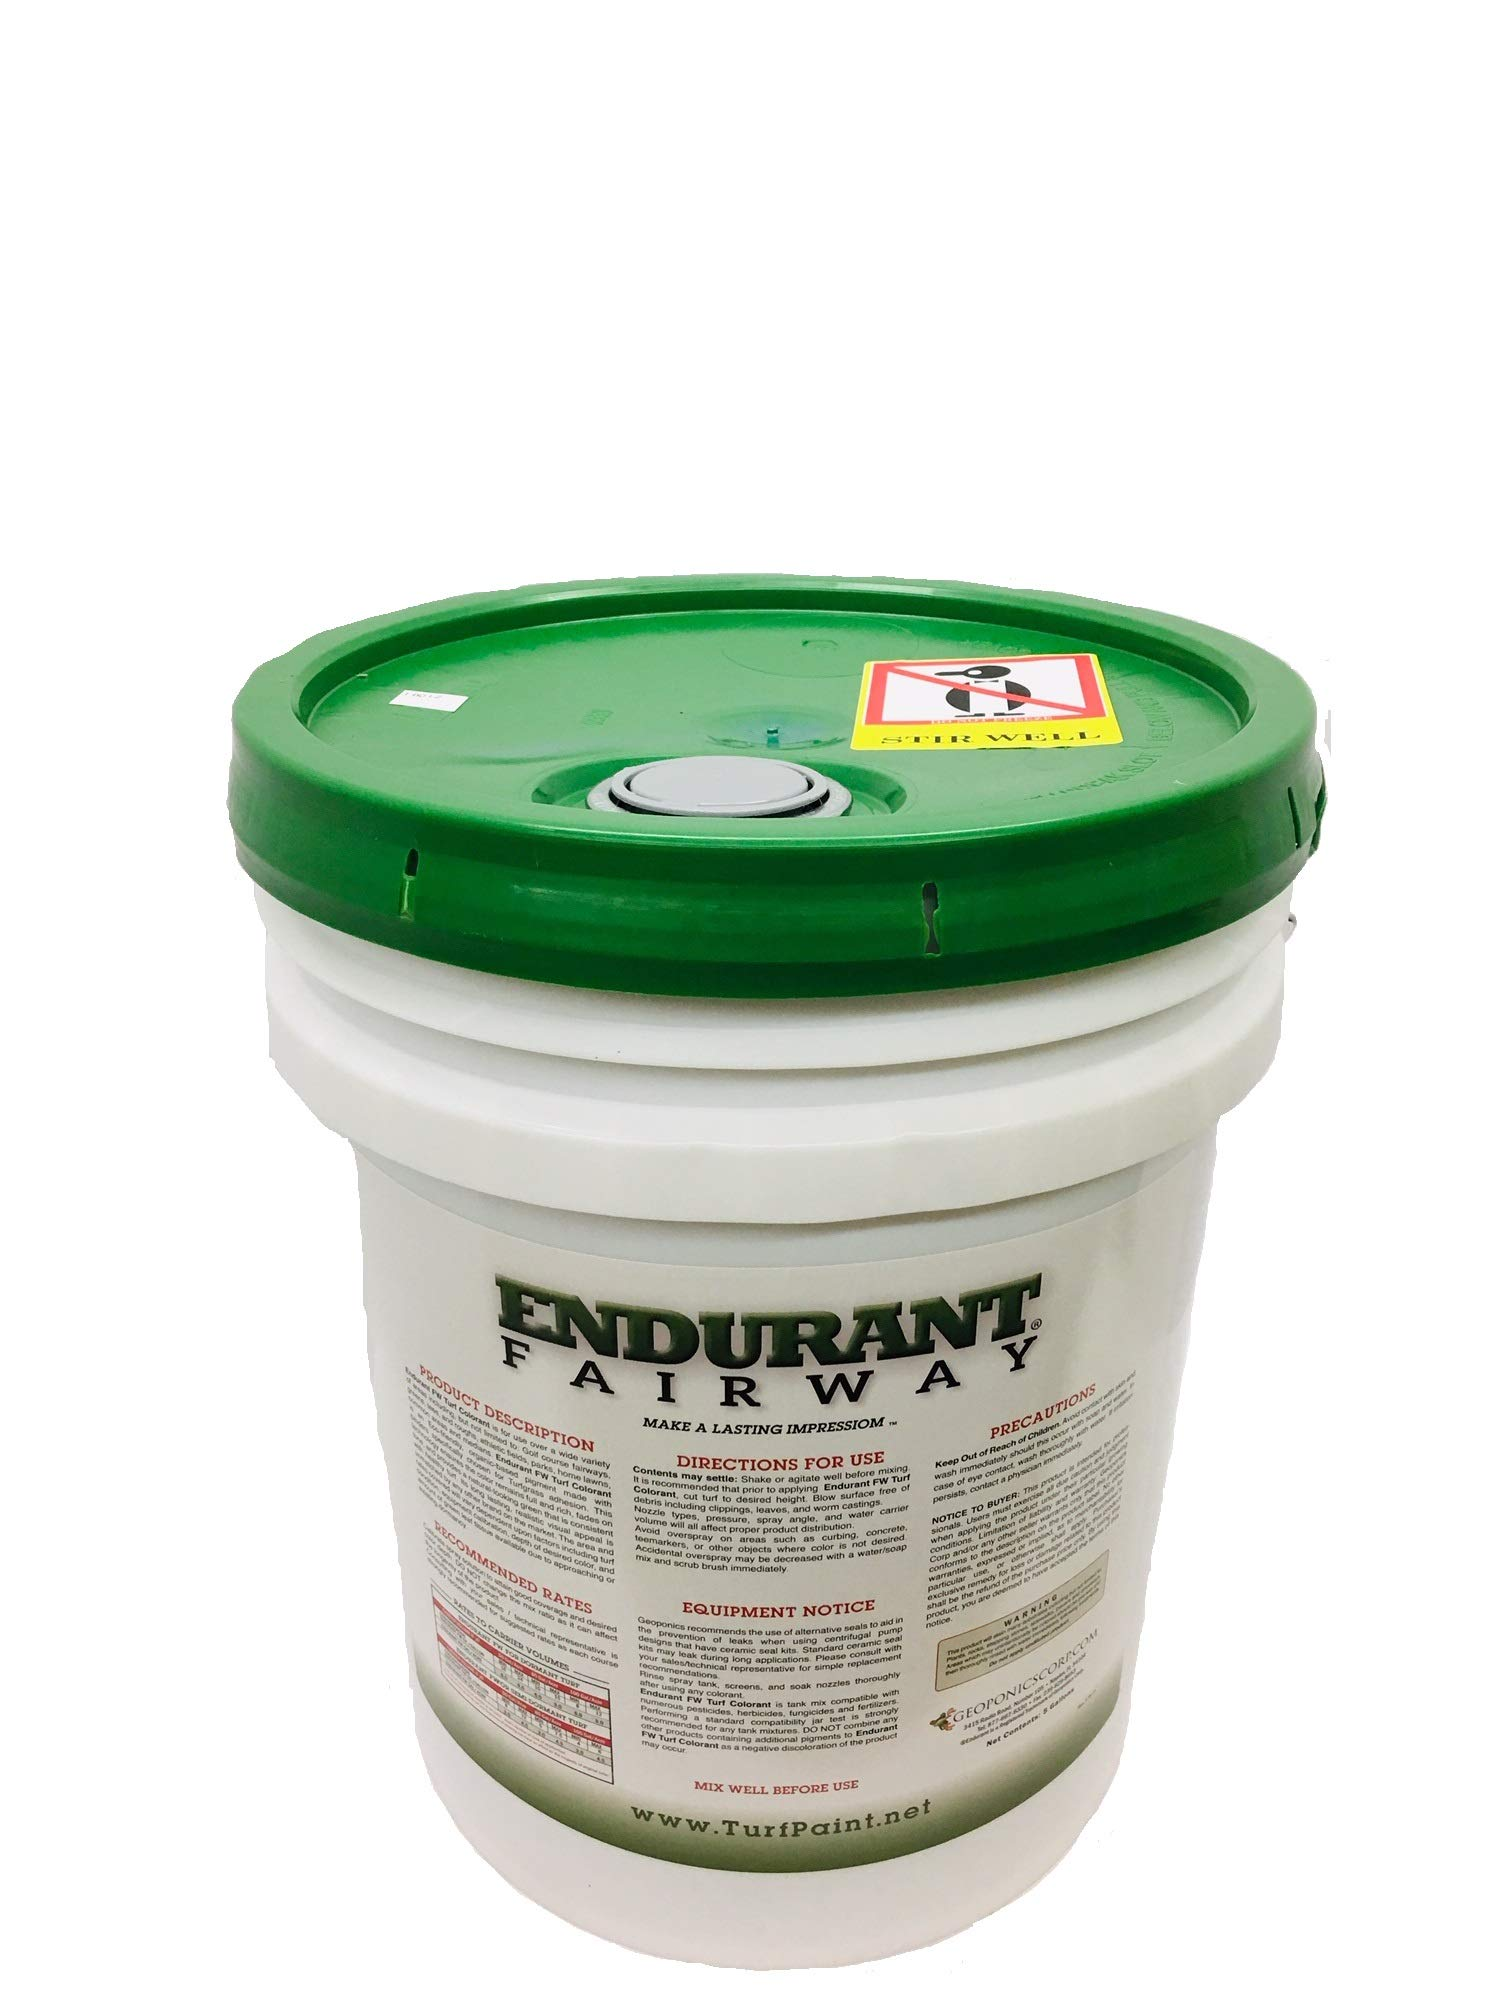 Geoponics Endurant Fairway 5 Gallon